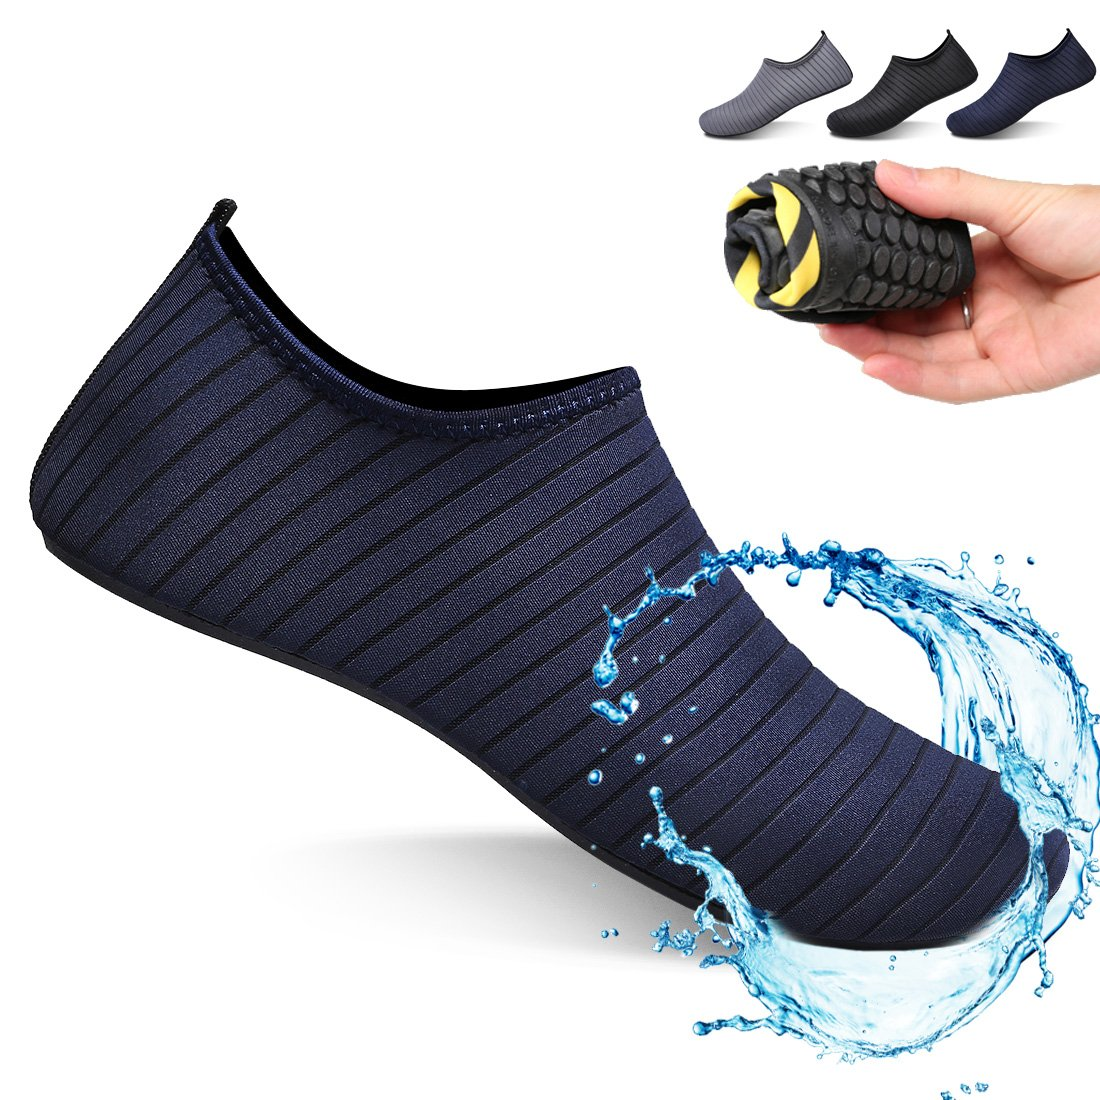 Ceyue Barefoot Water Shoes Breathable Water Sport Shoes Non-Slip Aqua Socks Beach Sandals for Men Women Navy 39/40